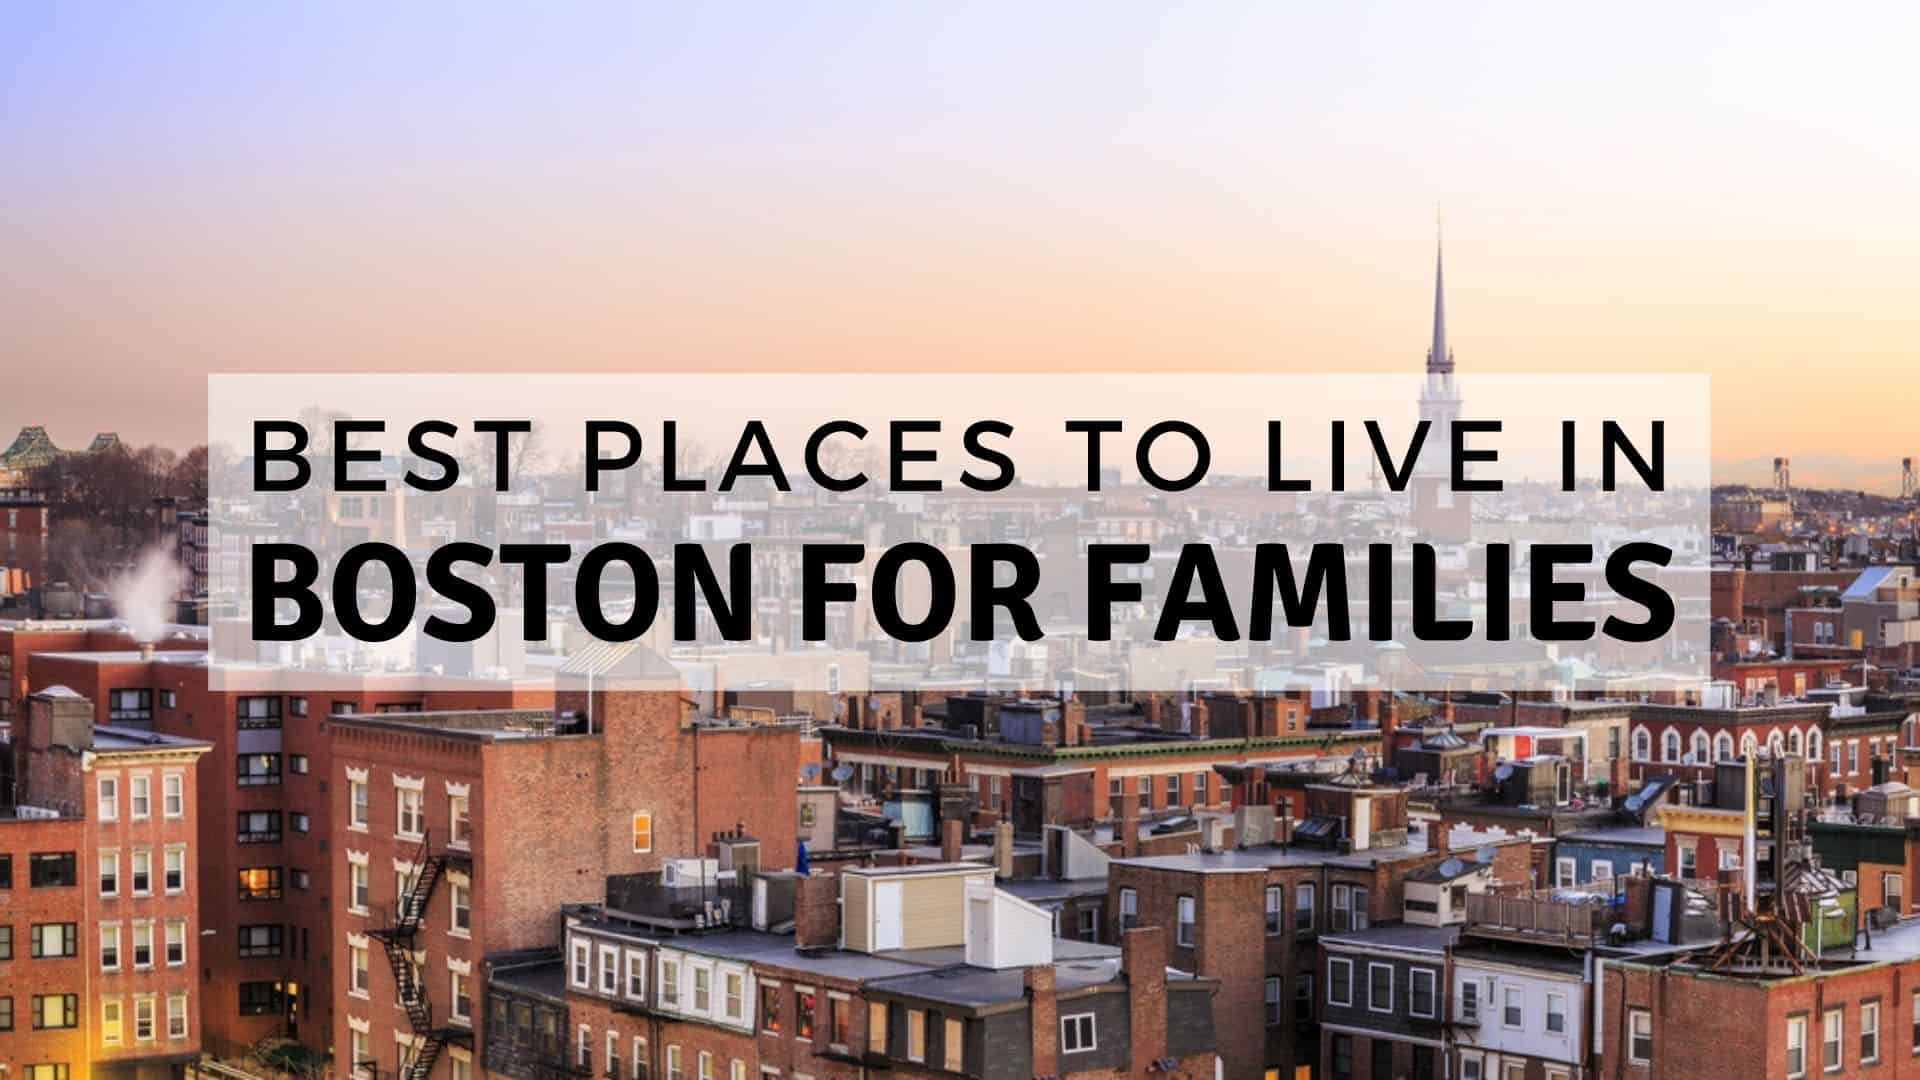 Best Places to Live in Boston for Families